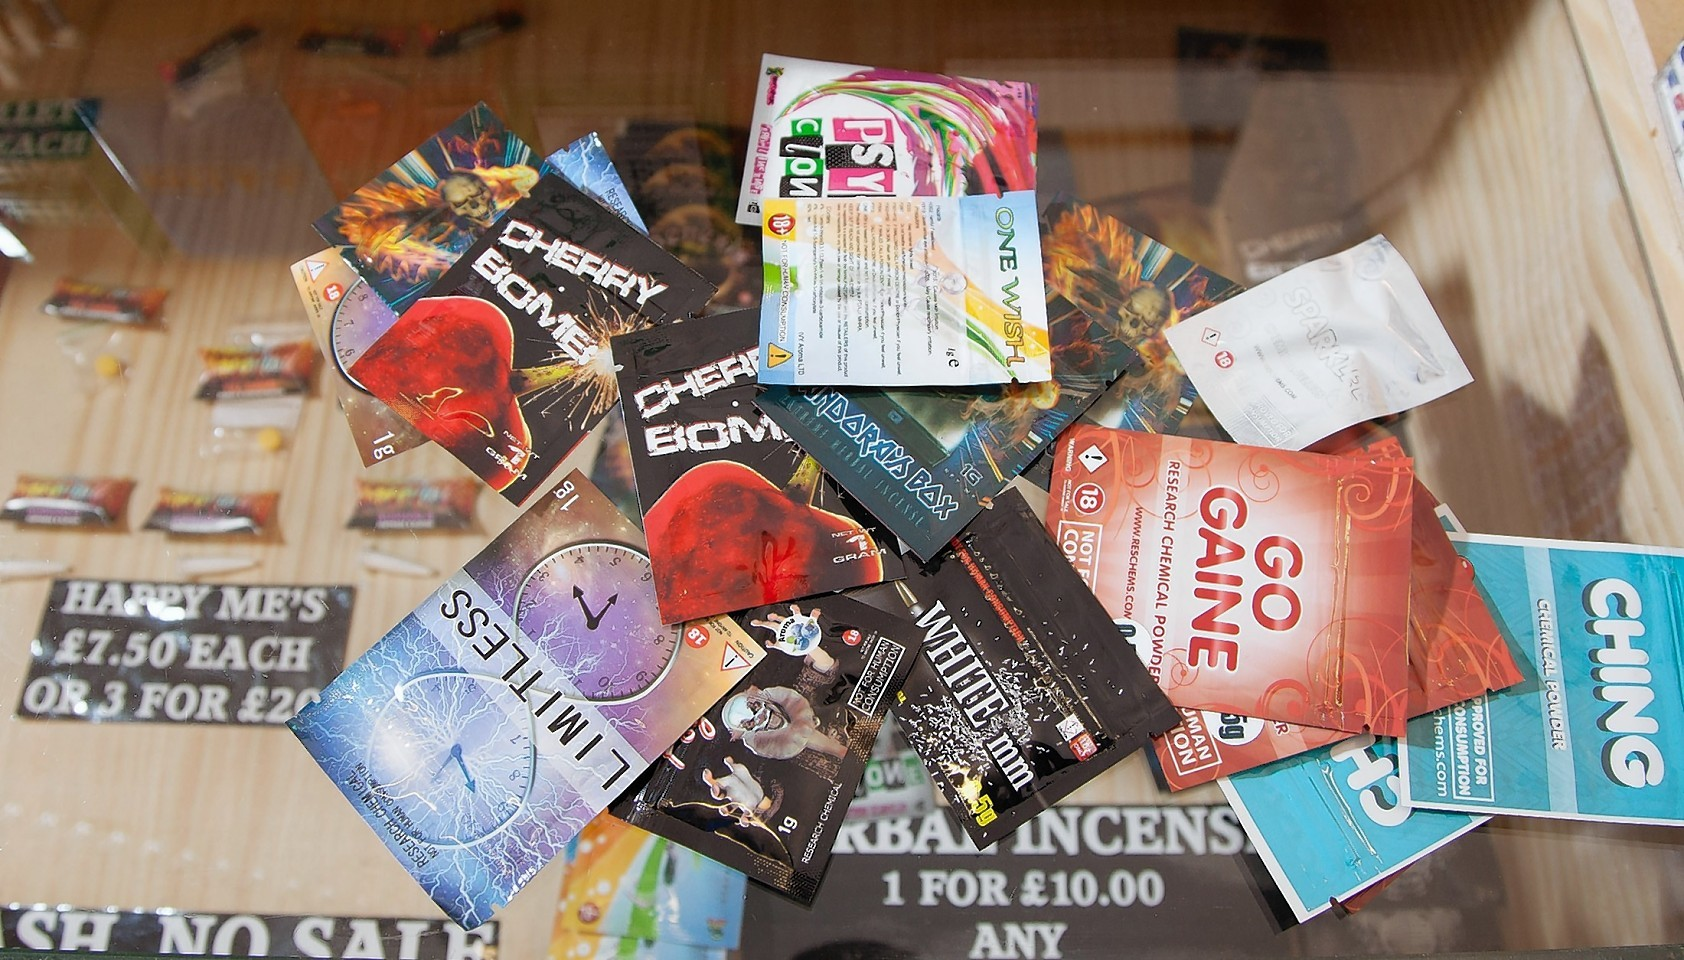 Packages of legal highs